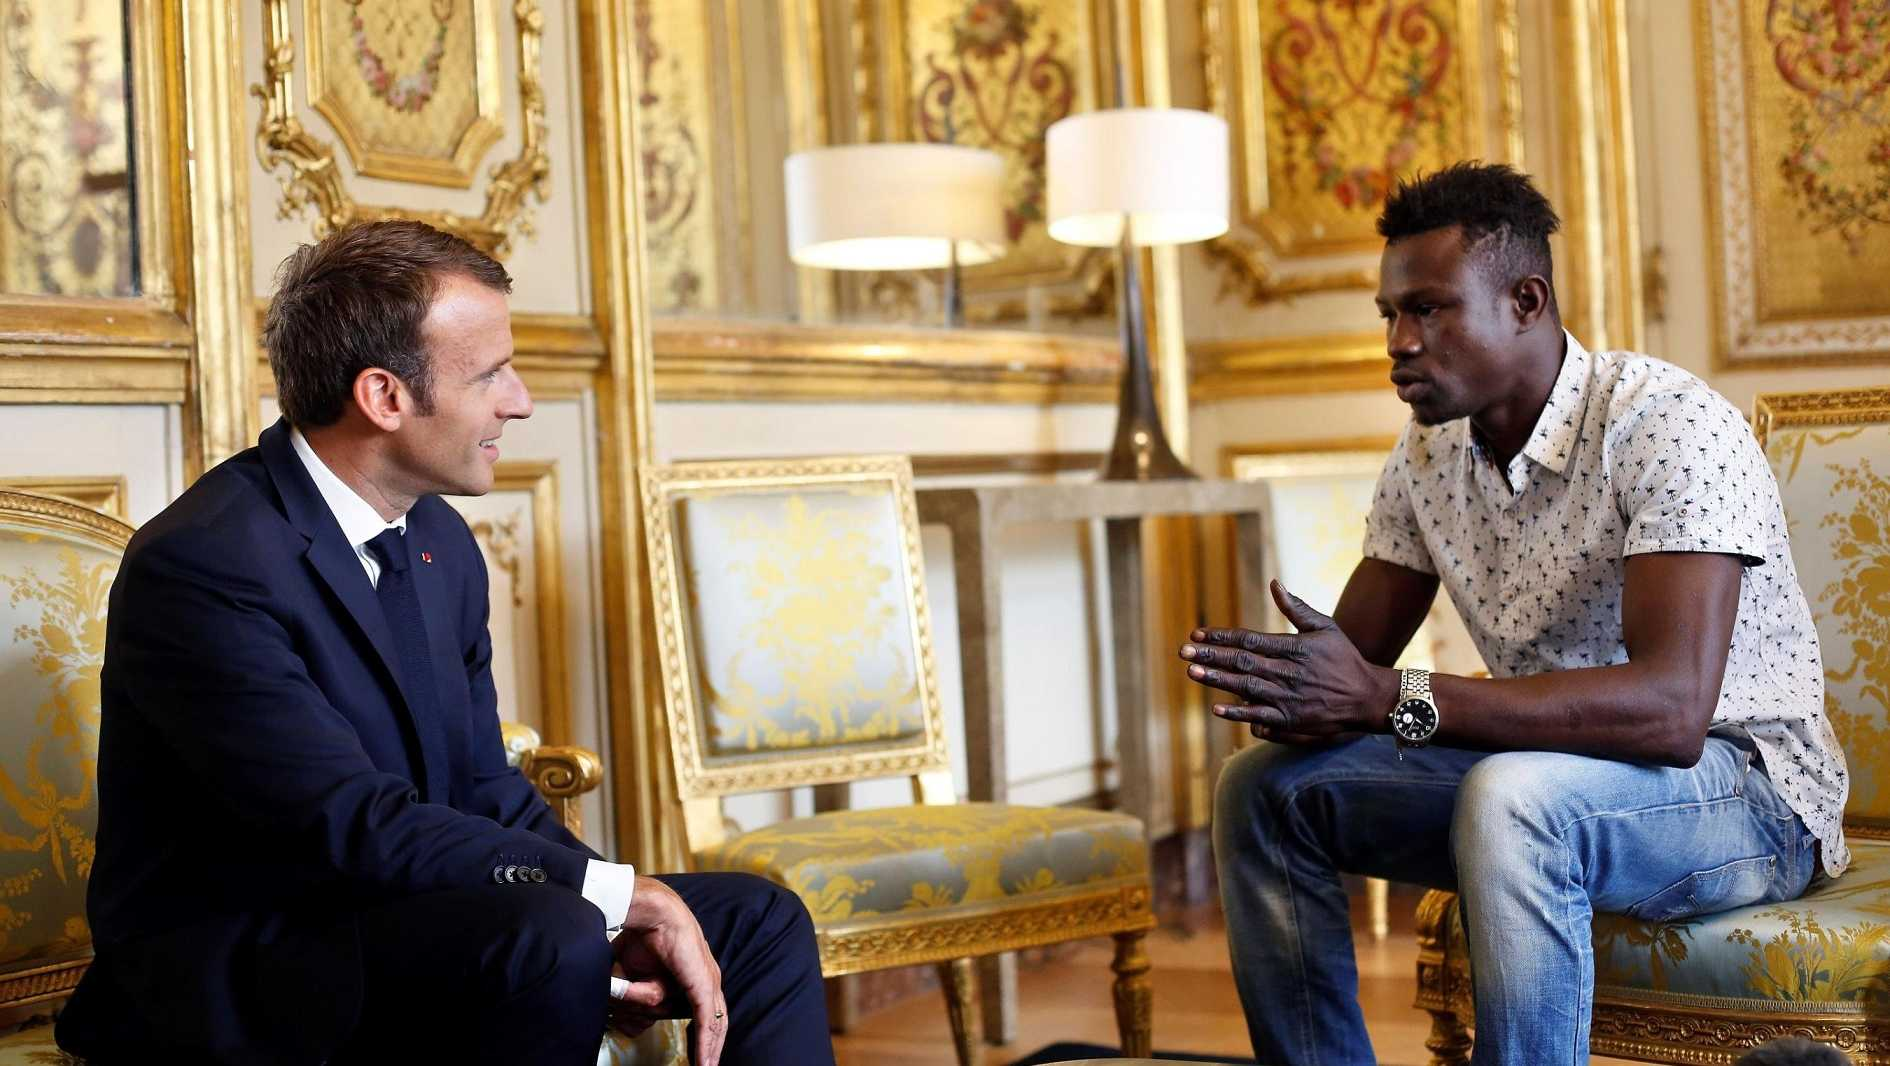 French President Emmanuel Macron (L) speaks with Mamoudou Gassama, 22, from Mali, at the presidential Elysee Palace in Paris, on May, 28, 2018.